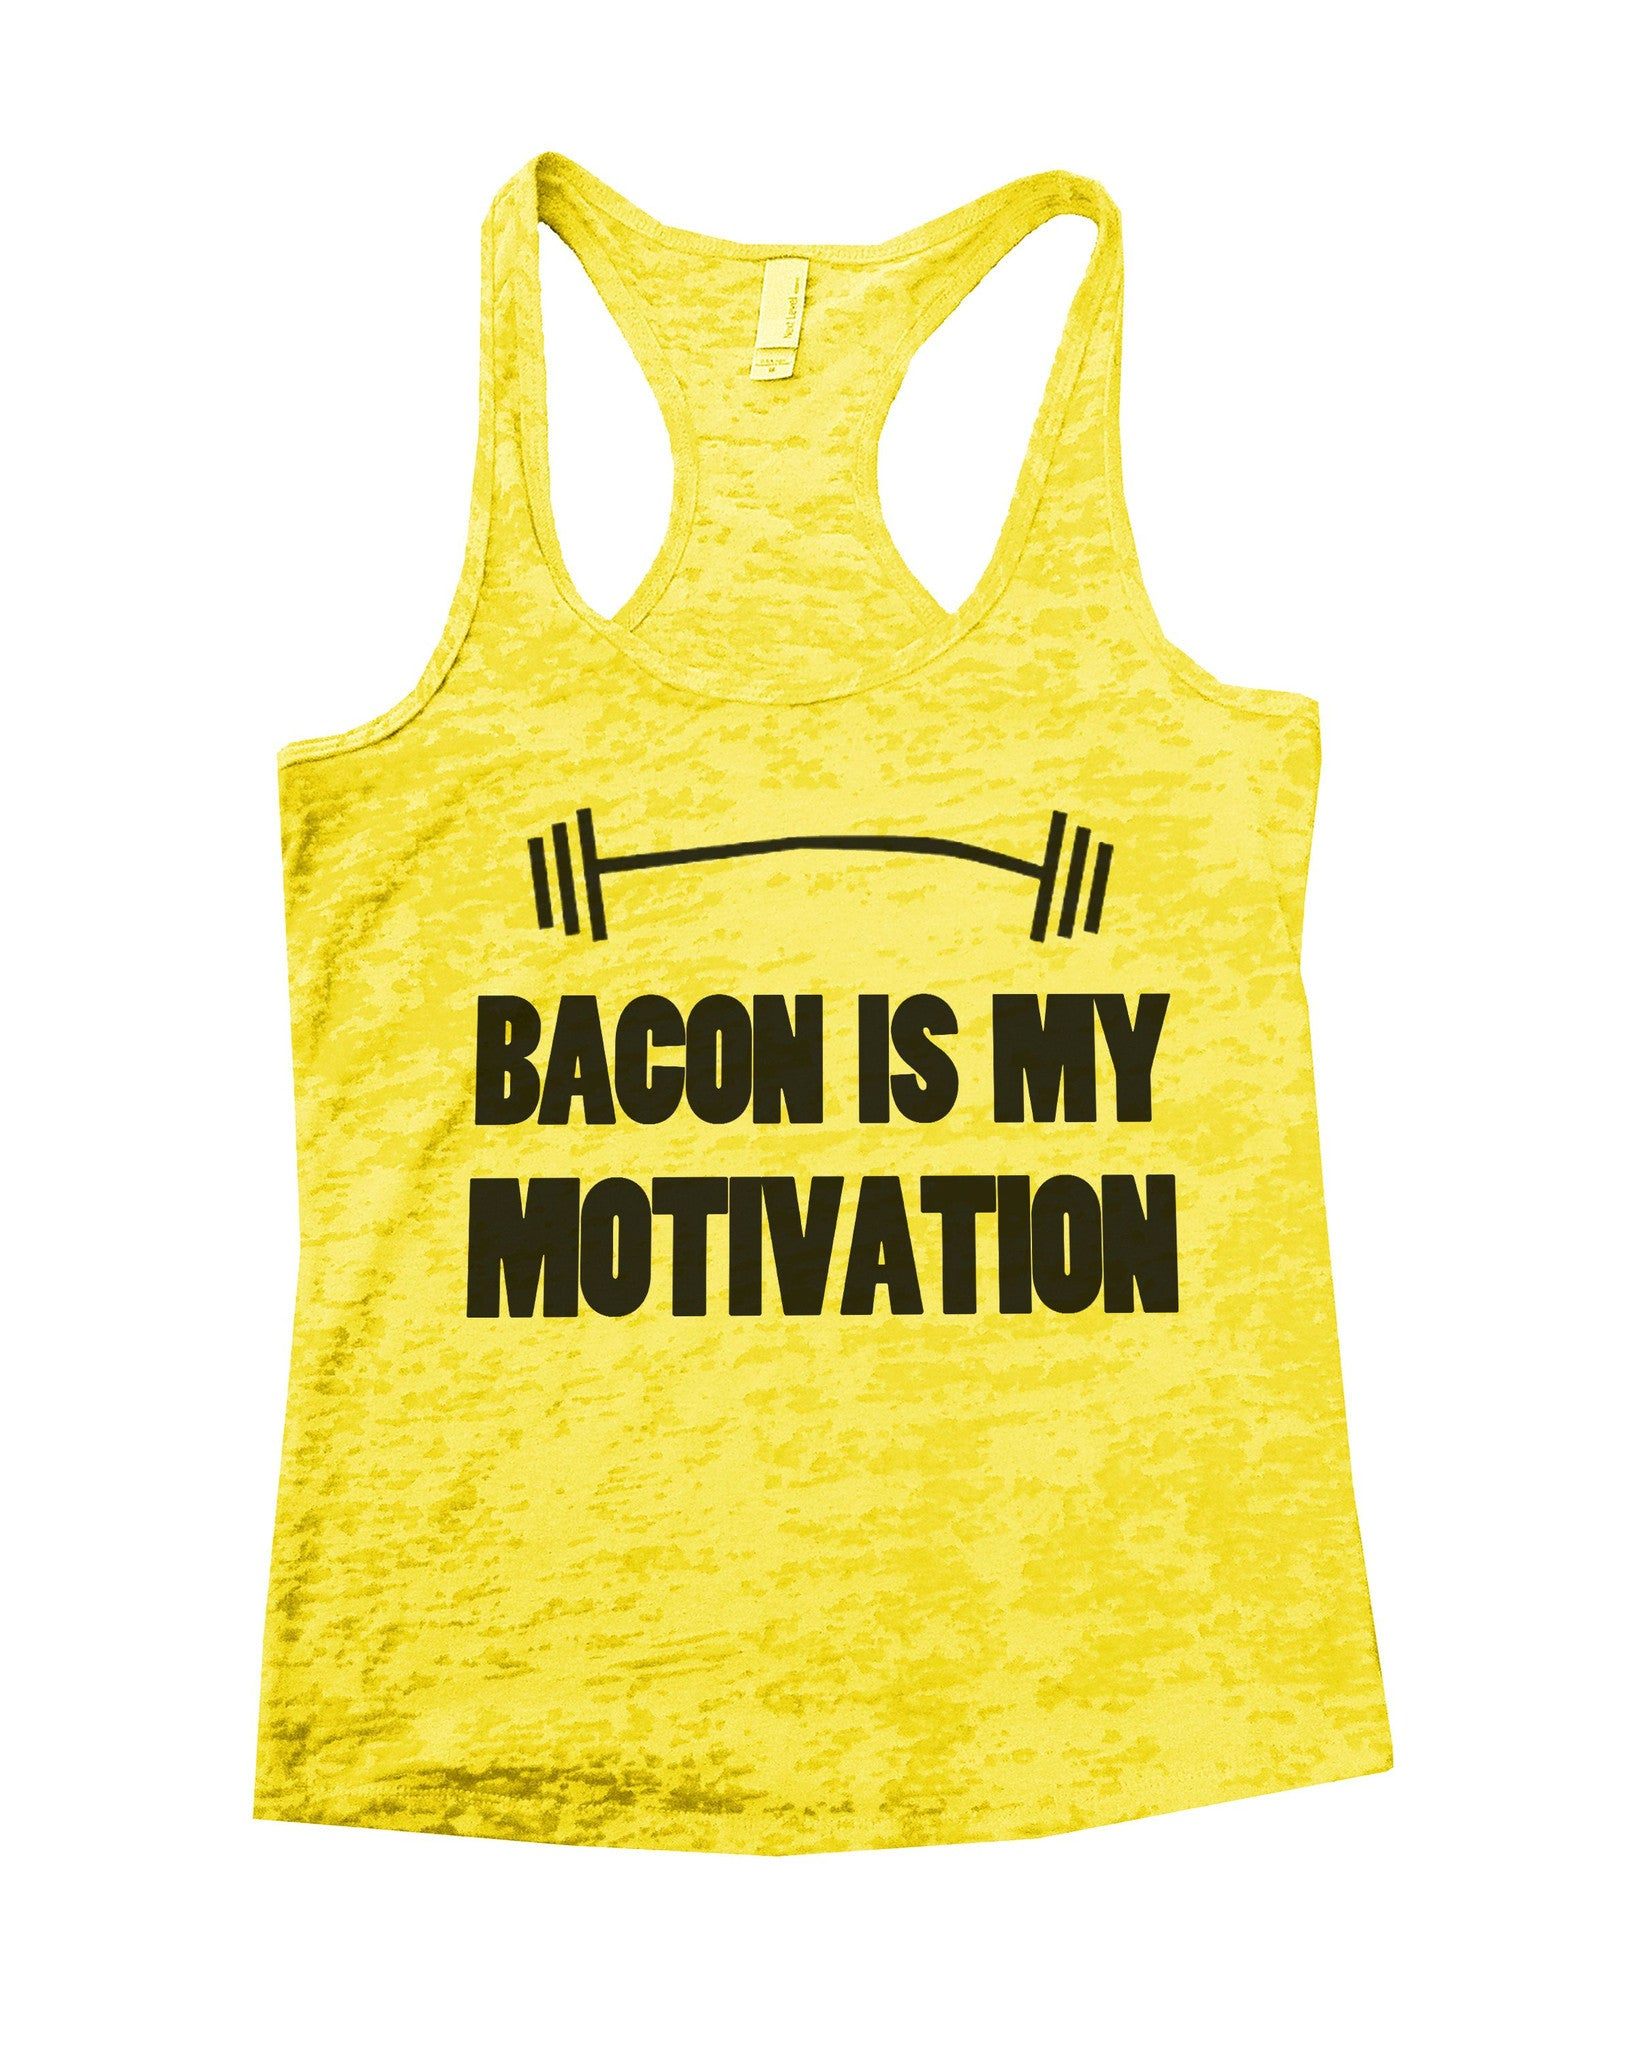 Bacon Is My Motivation Burnout Tank Top By BurnoutTankTops.com - 740 - Funny Shirts Tank Tops Burnouts and Triblends  - 6